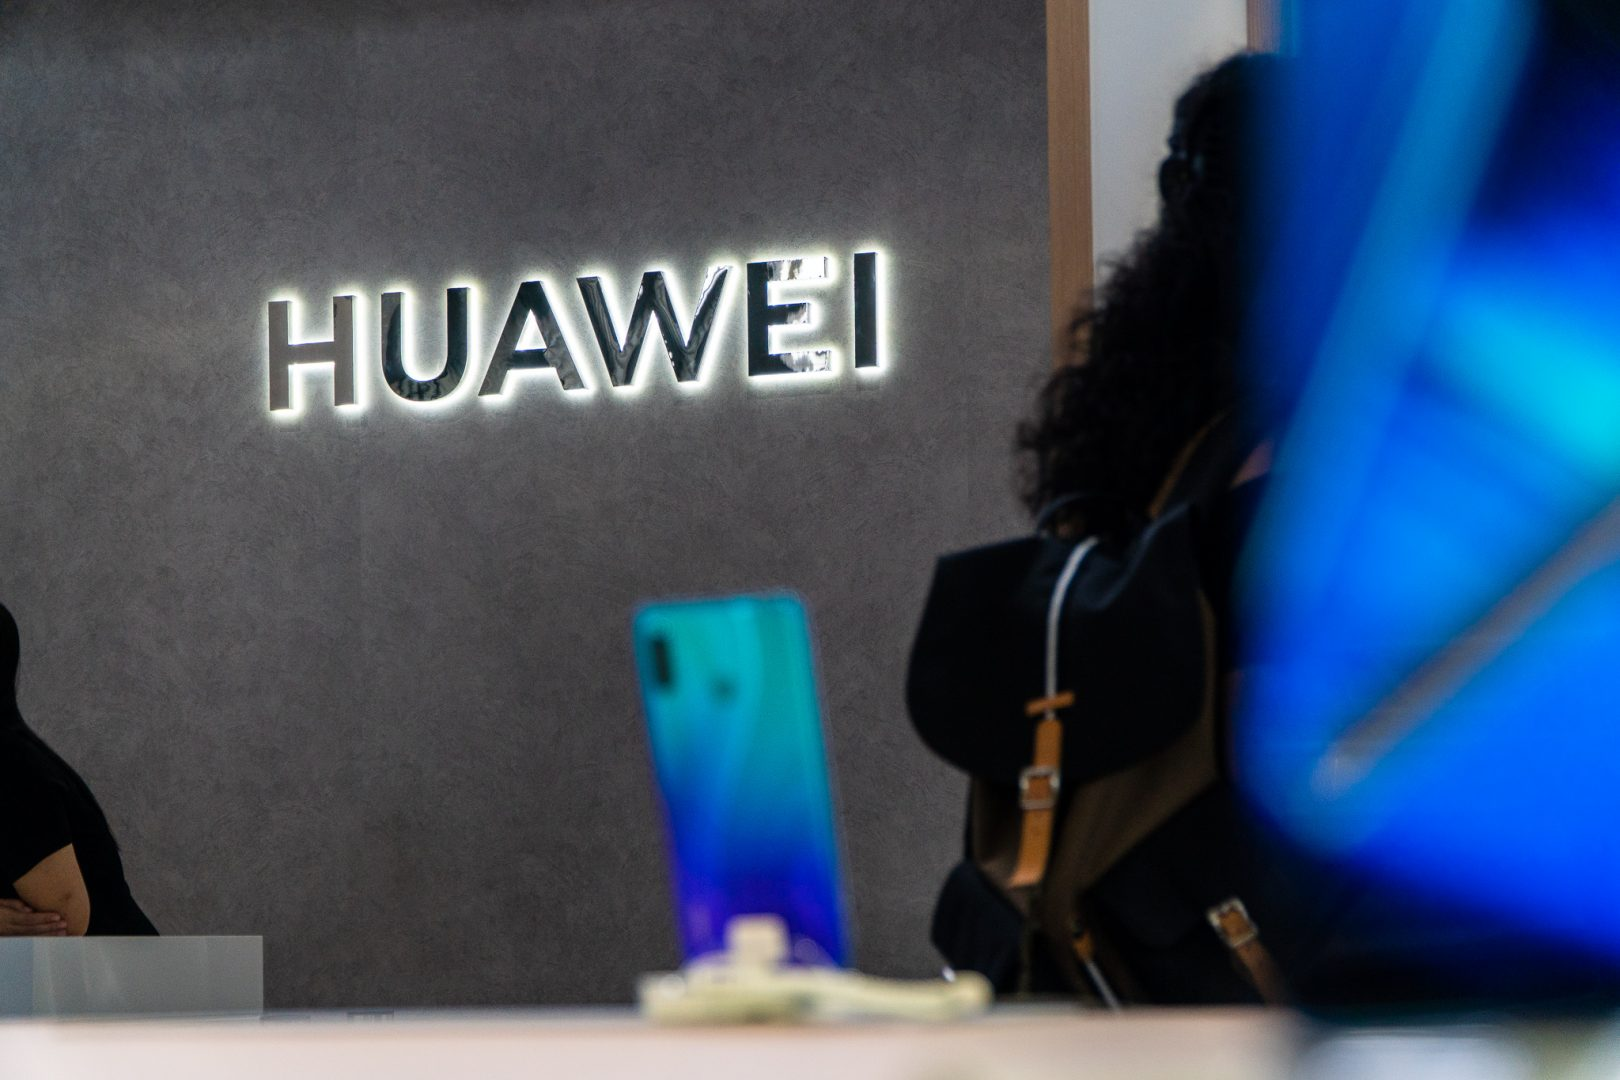 Huawei's smartphone supply chain reveals reliance on US